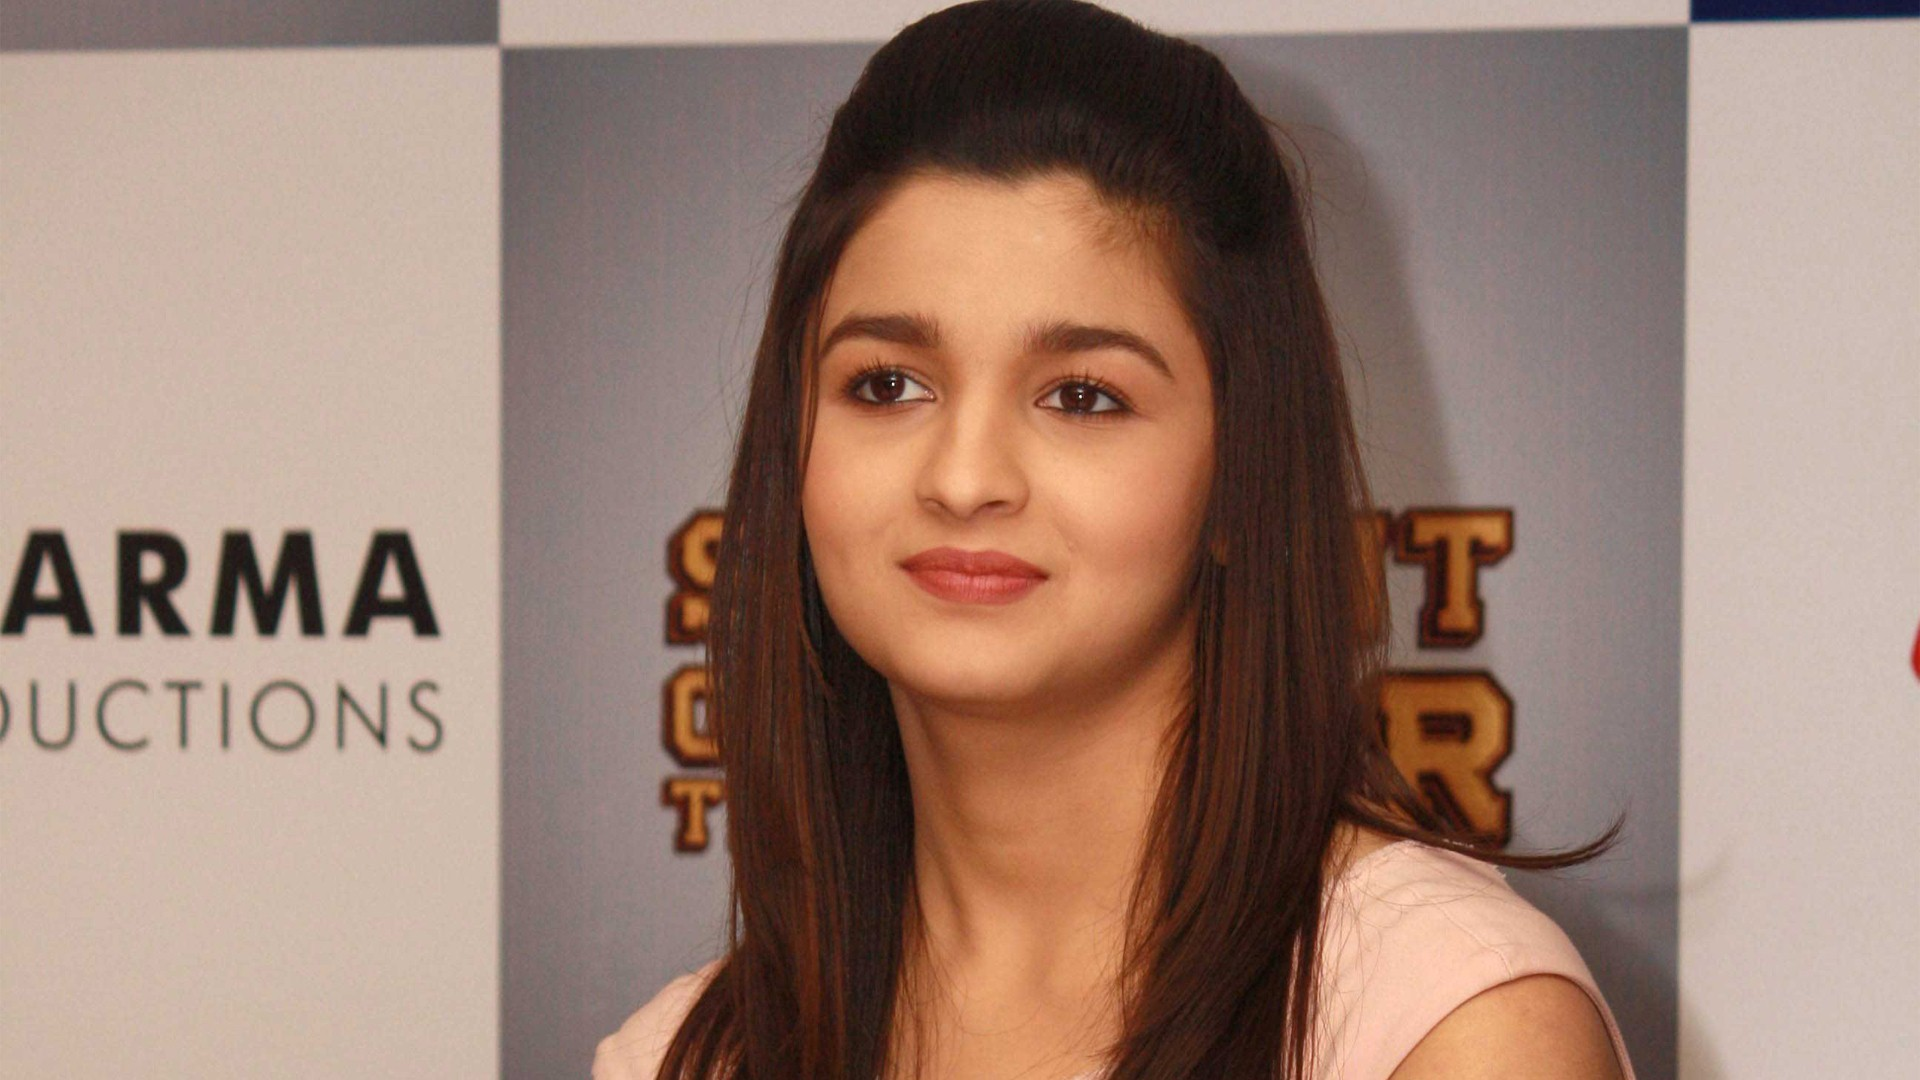 Units Of Alia Bhatt Hd Wallpaper 1920x1080